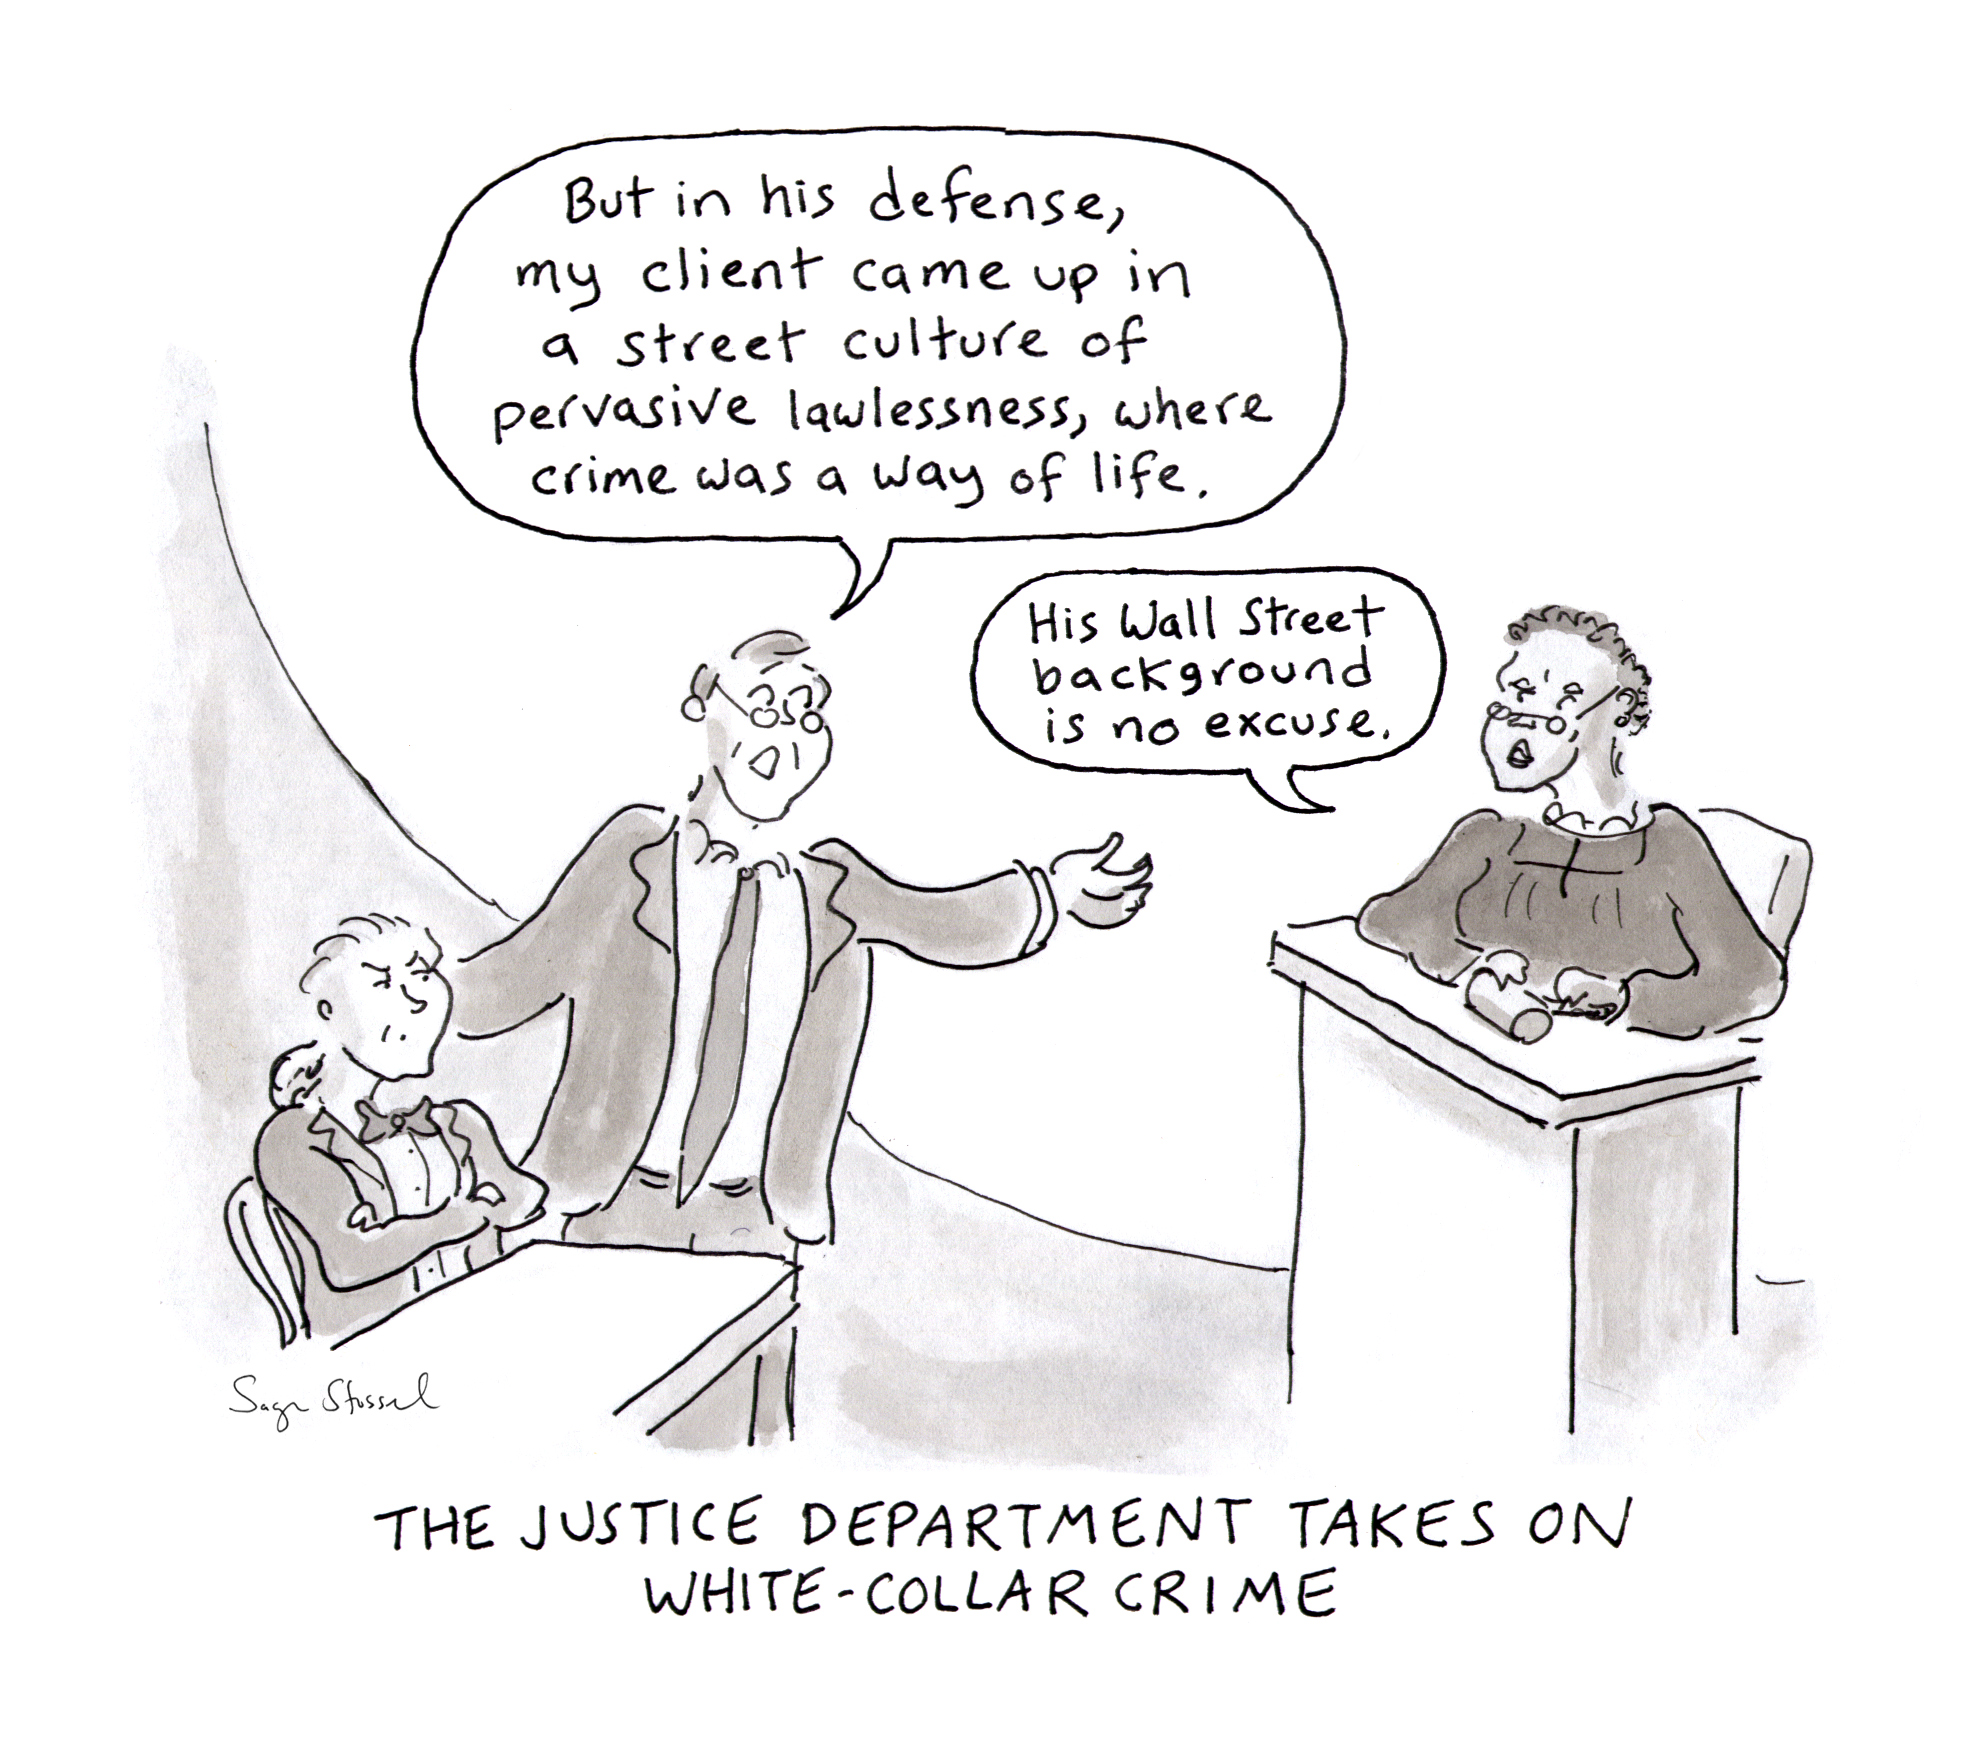 justice department, white collar crime, prosecution, wall street, Attorney General Loretta Lynch, sally yates, corporate misconduct, settlements, financial crisis, cartoon